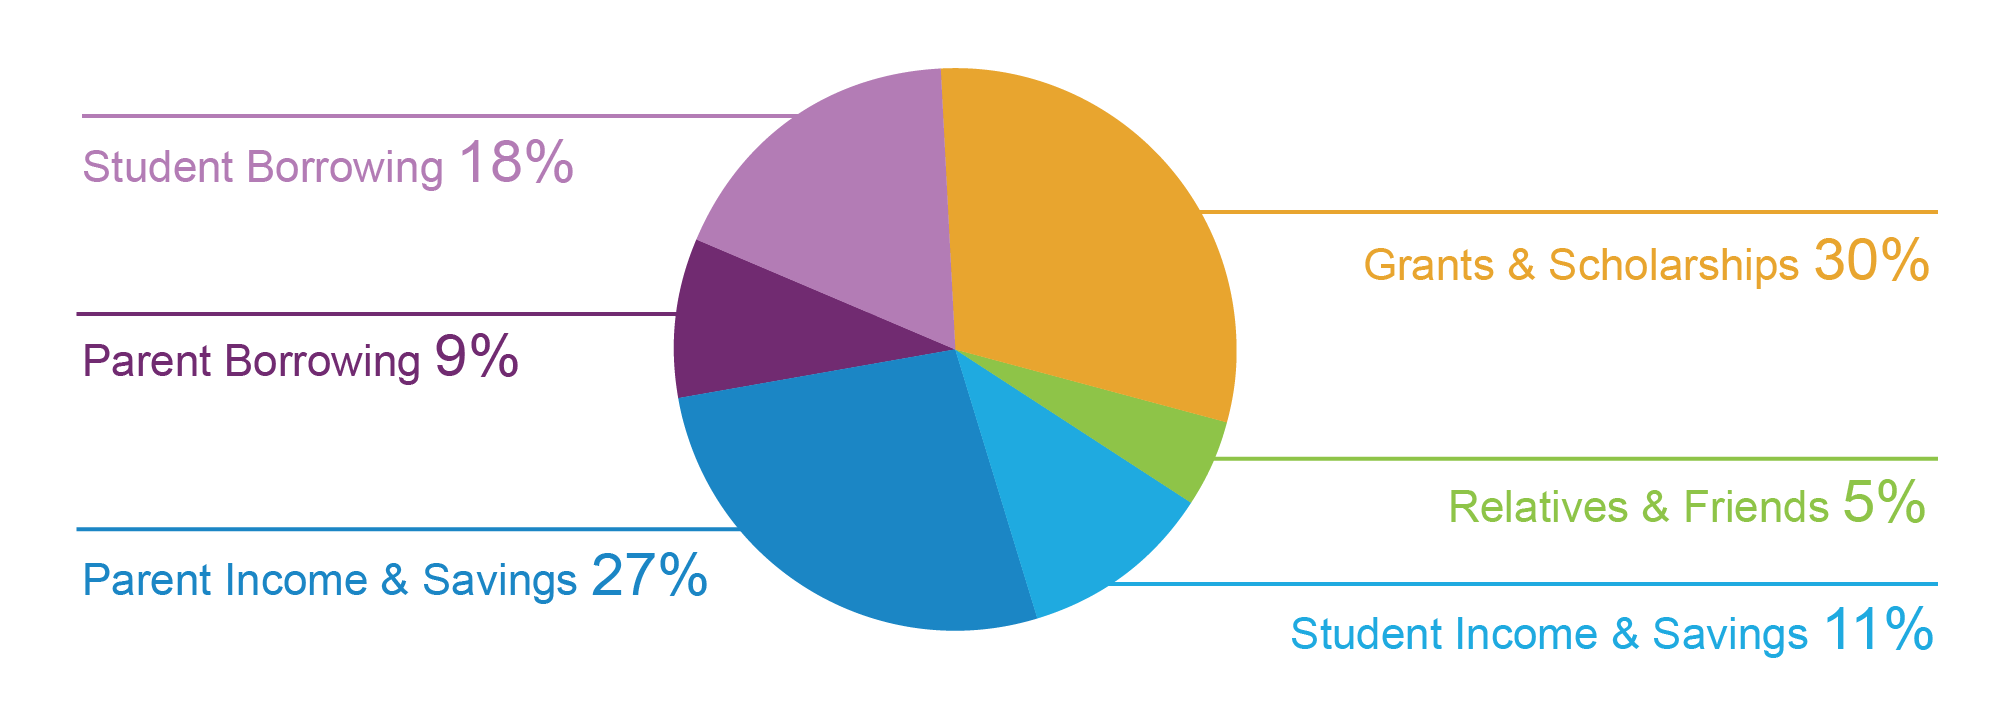 Sources of college funds 2013 Source: How